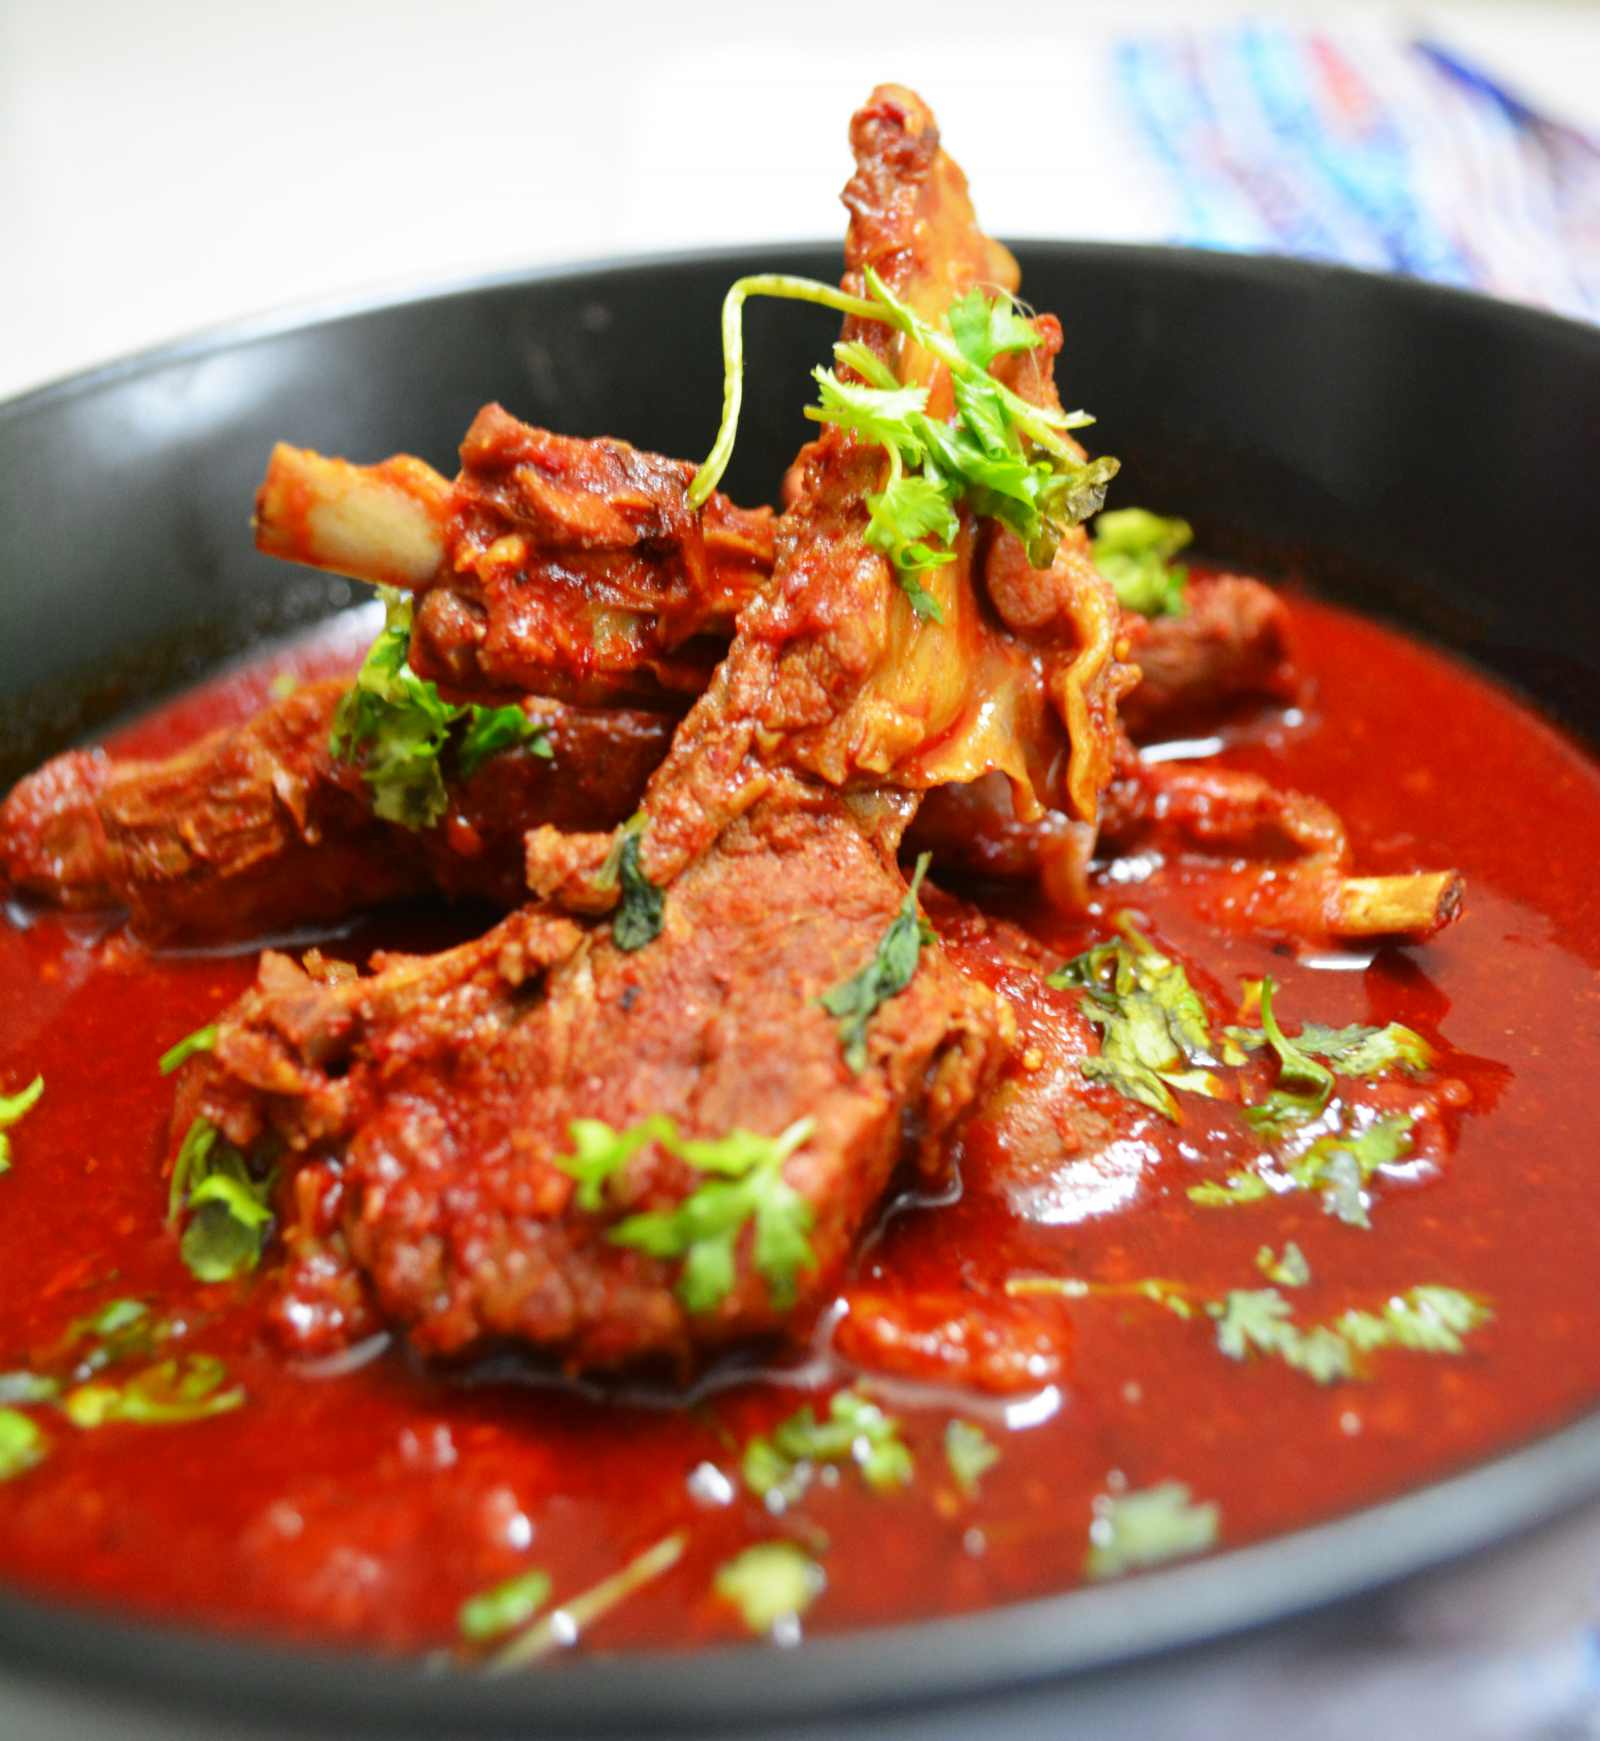 Rajasthani laal maas recipe mutton in red spicy gravy by archanas rajasthani laal maas recipe mutton in red spicy gravy by archanas kitchen forumfinder Images